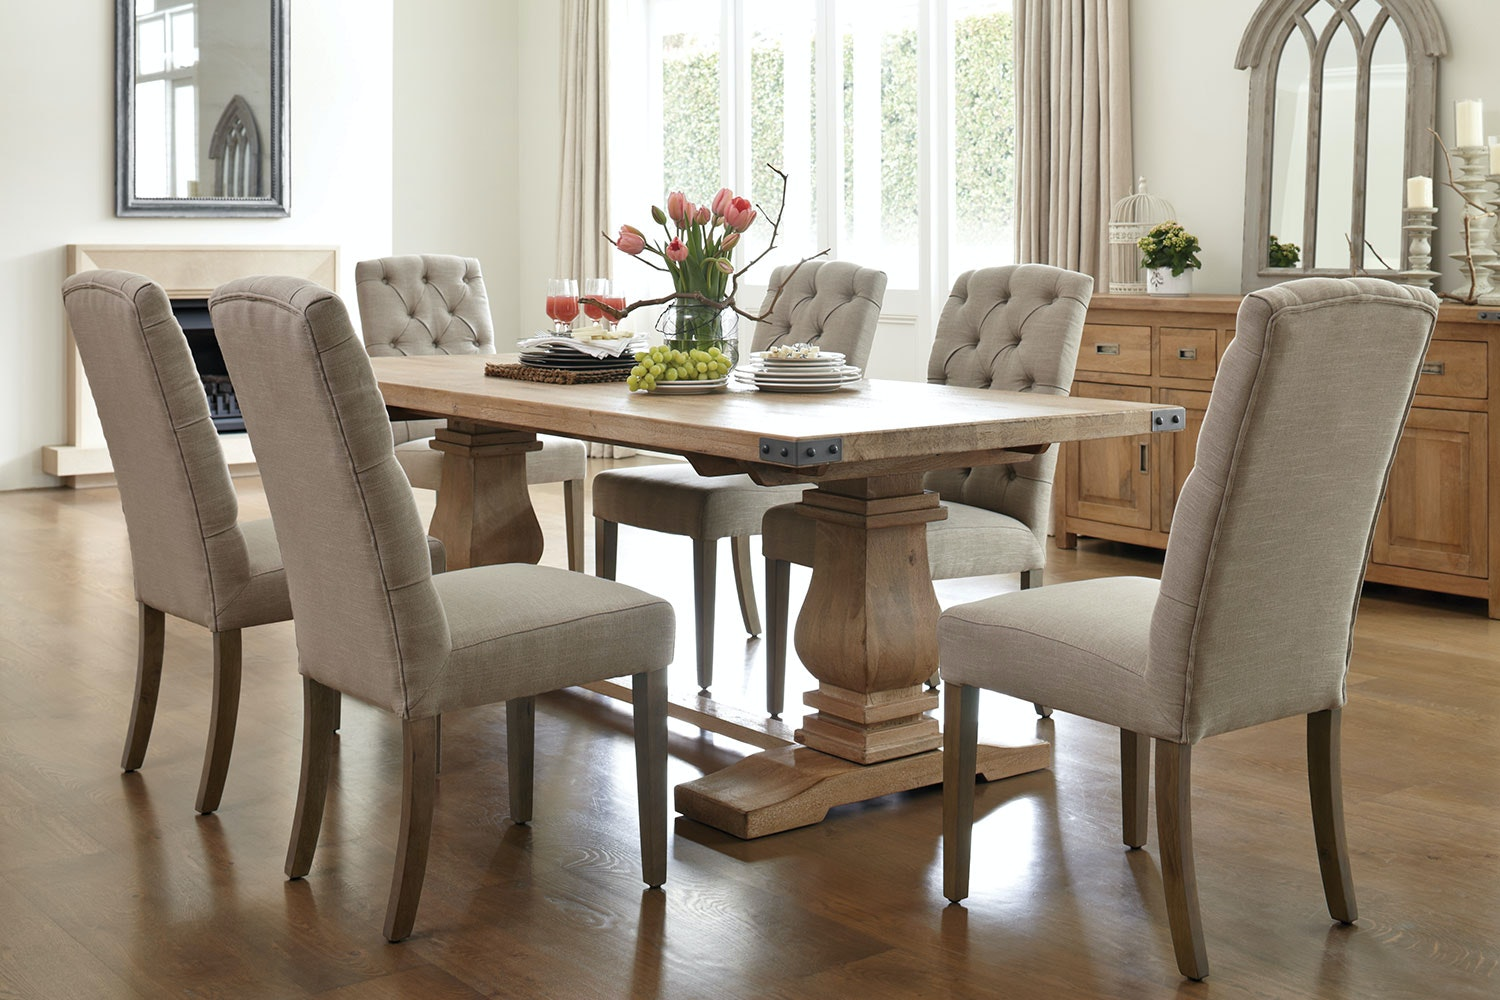 utah 7 piece dining suite by vivin harvey norman new zealand dining room suites dining furniture